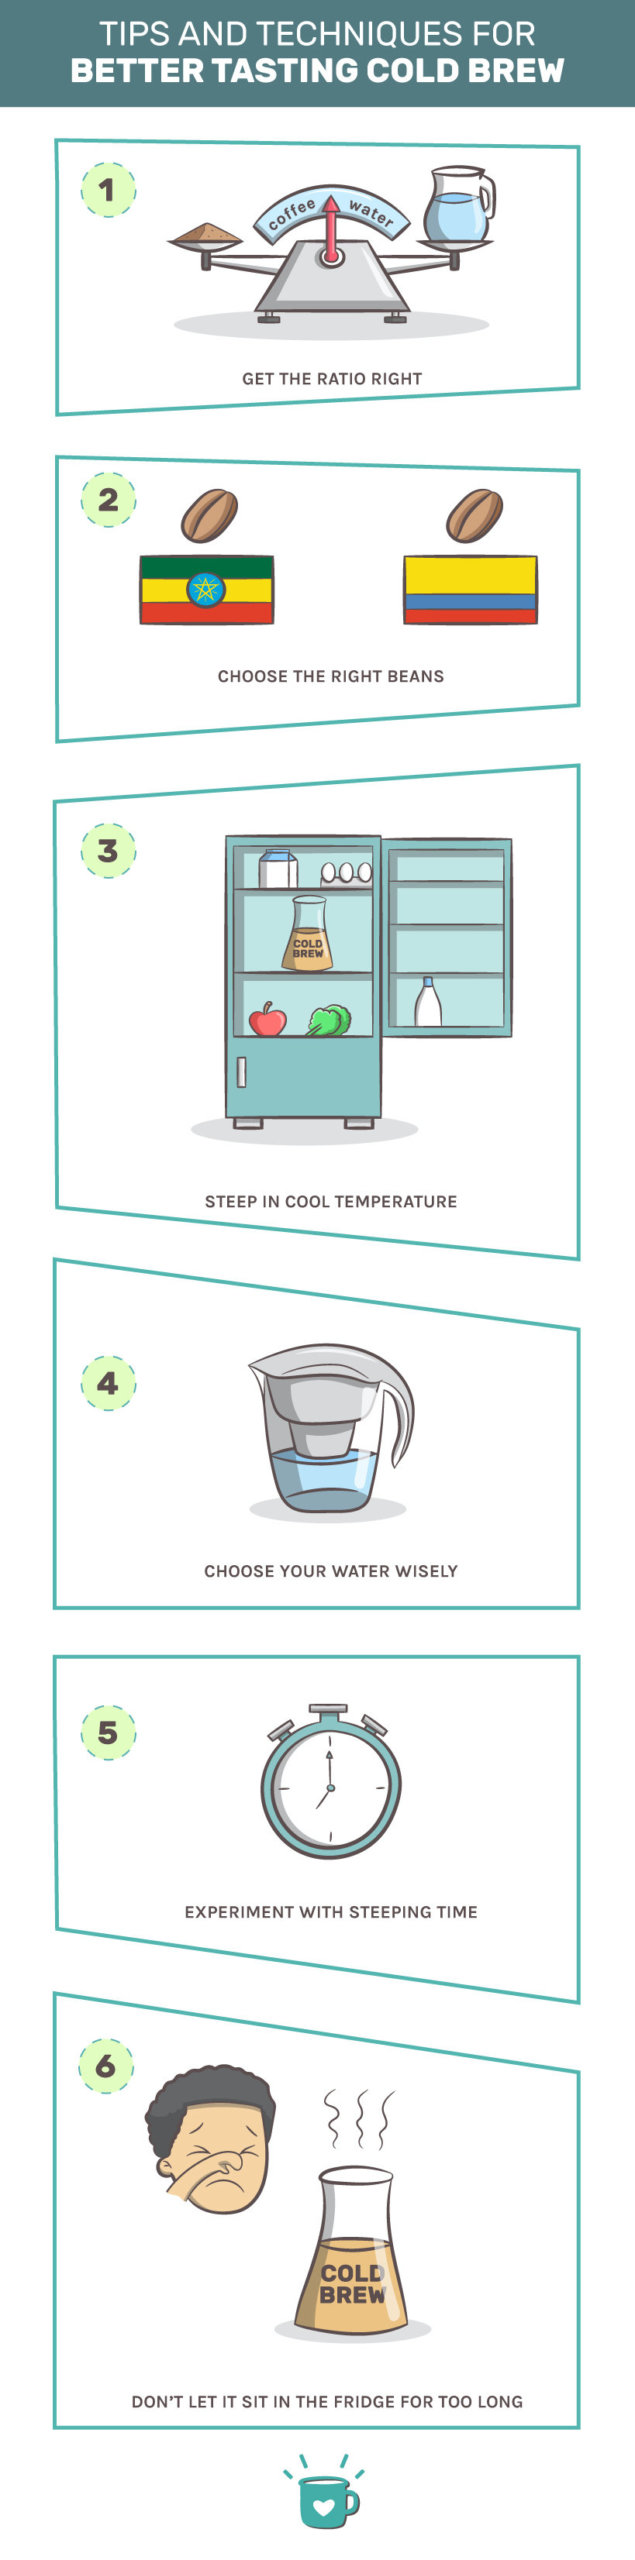 infographic about tips and techniques to make cold brew